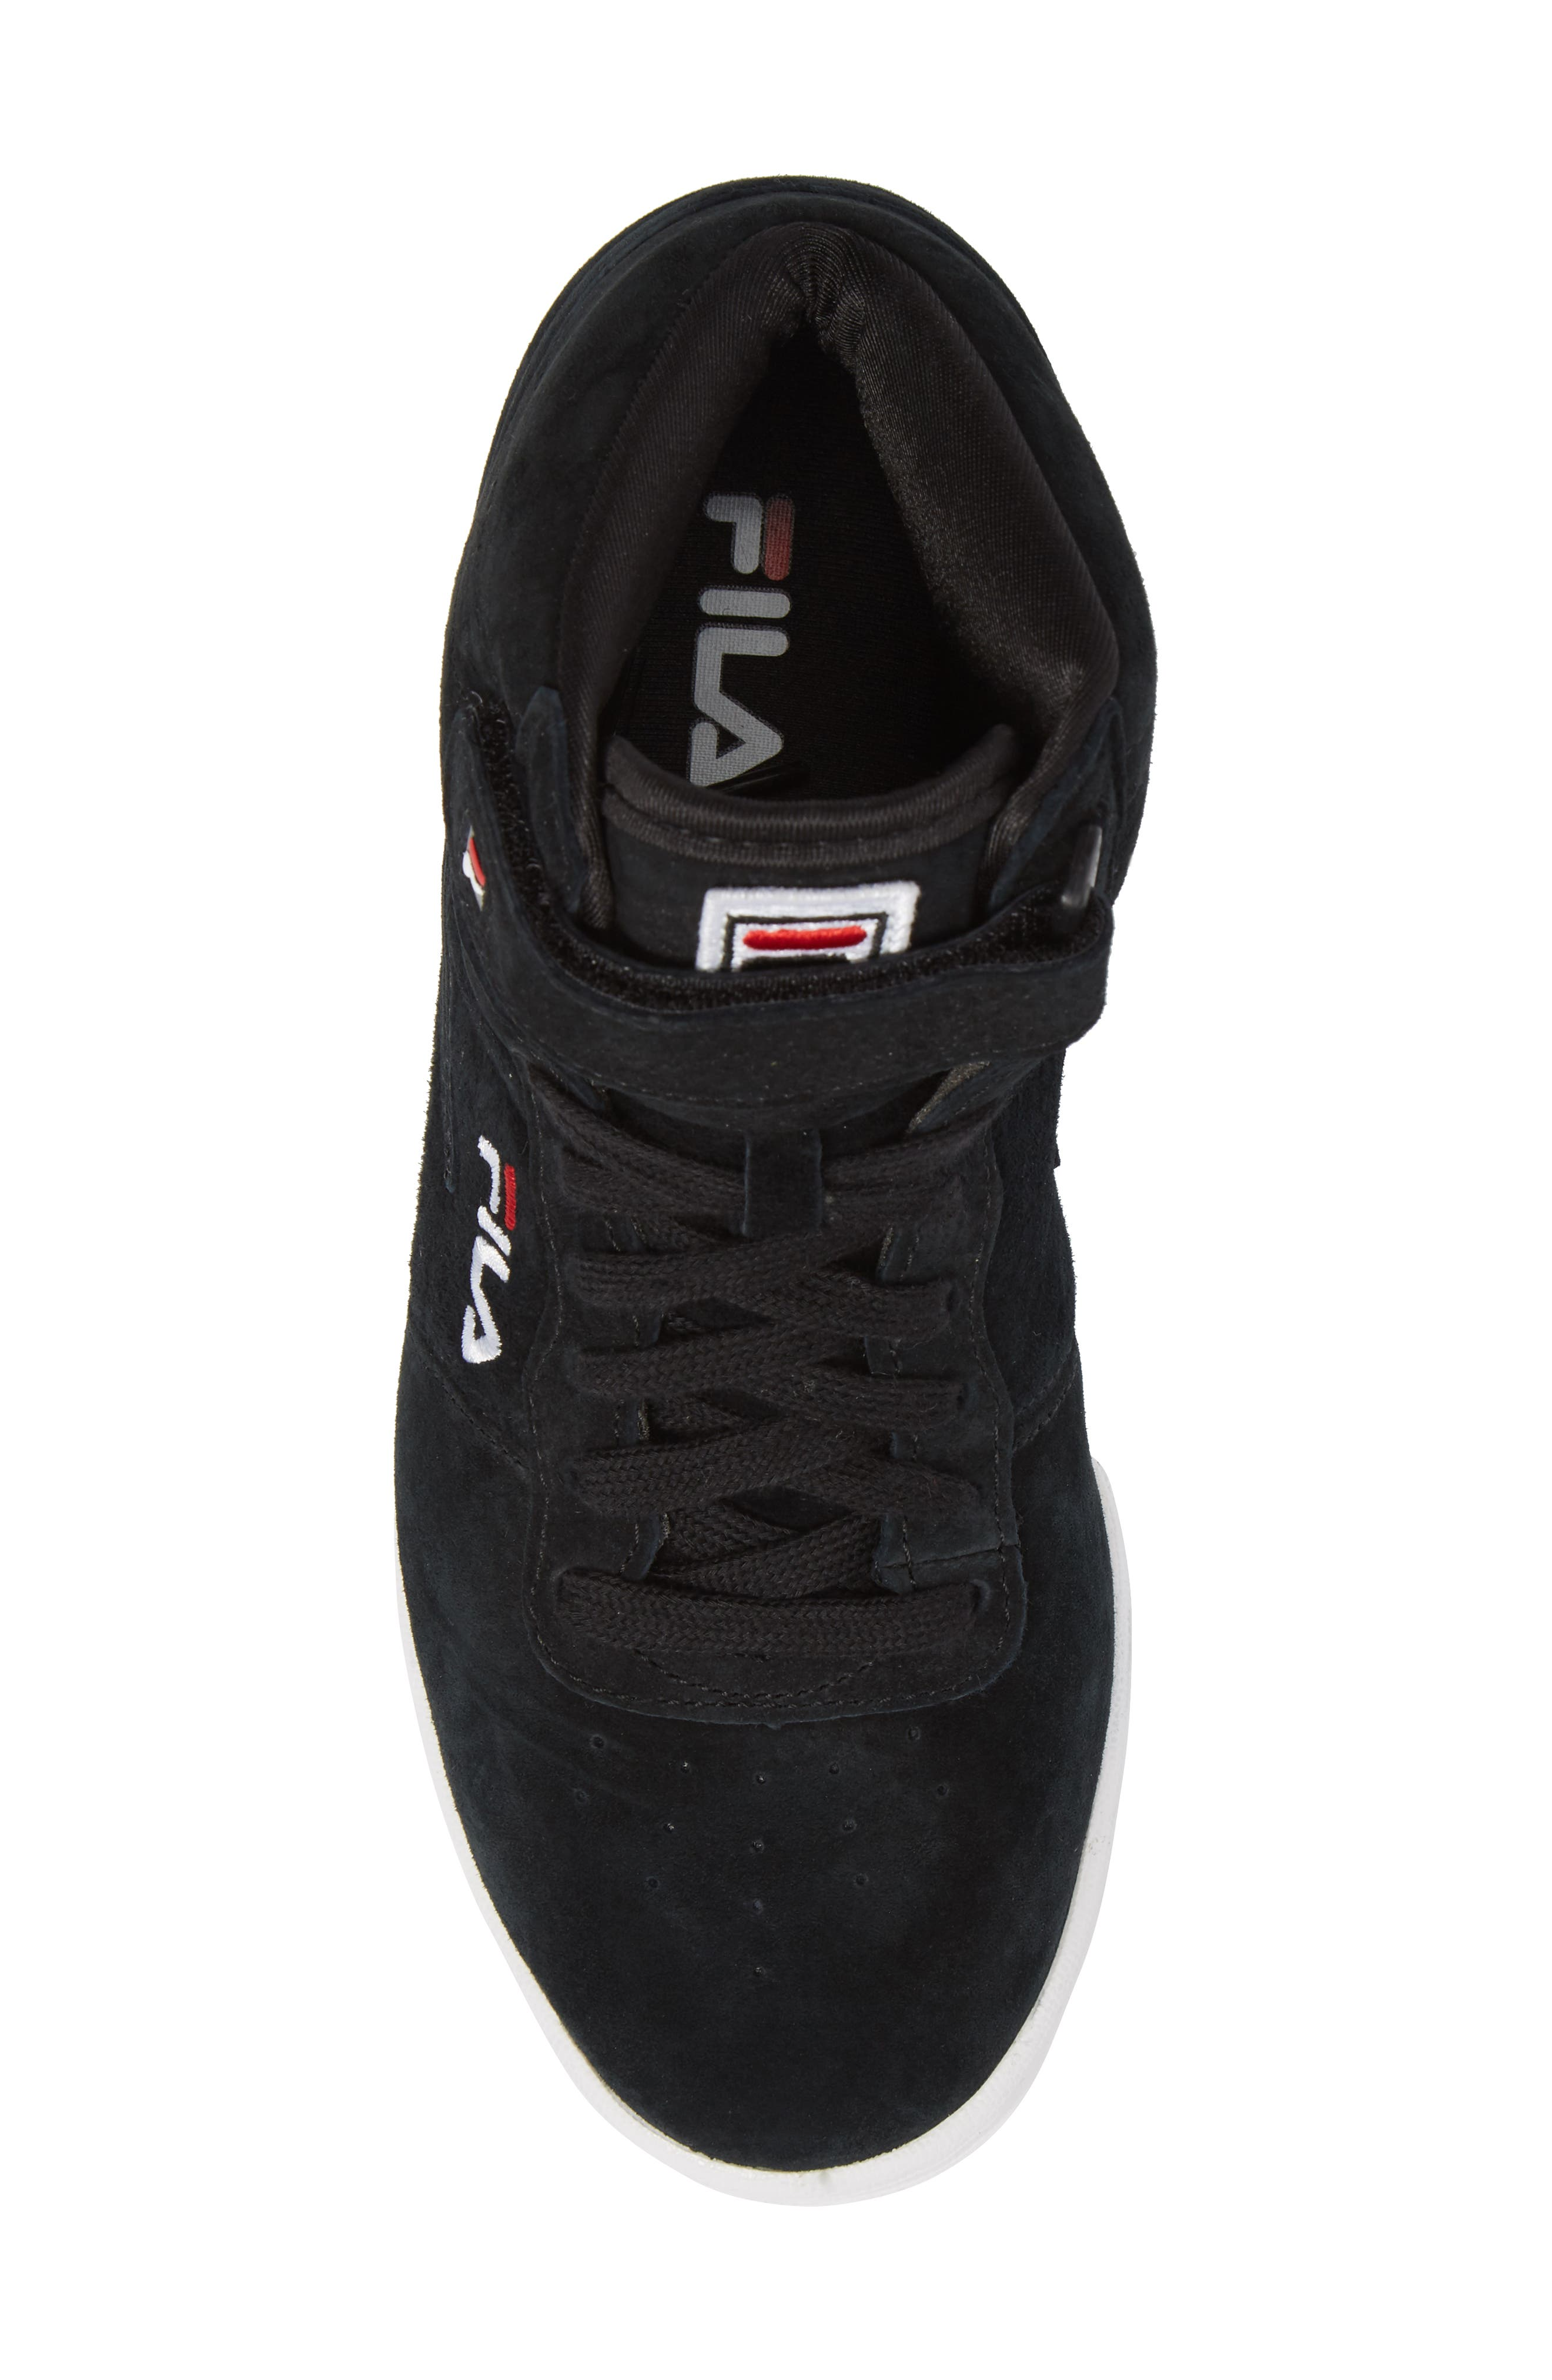 F-13 Premium Mid Top Sneaker,                             Alternate thumbnail 5, color,                             001